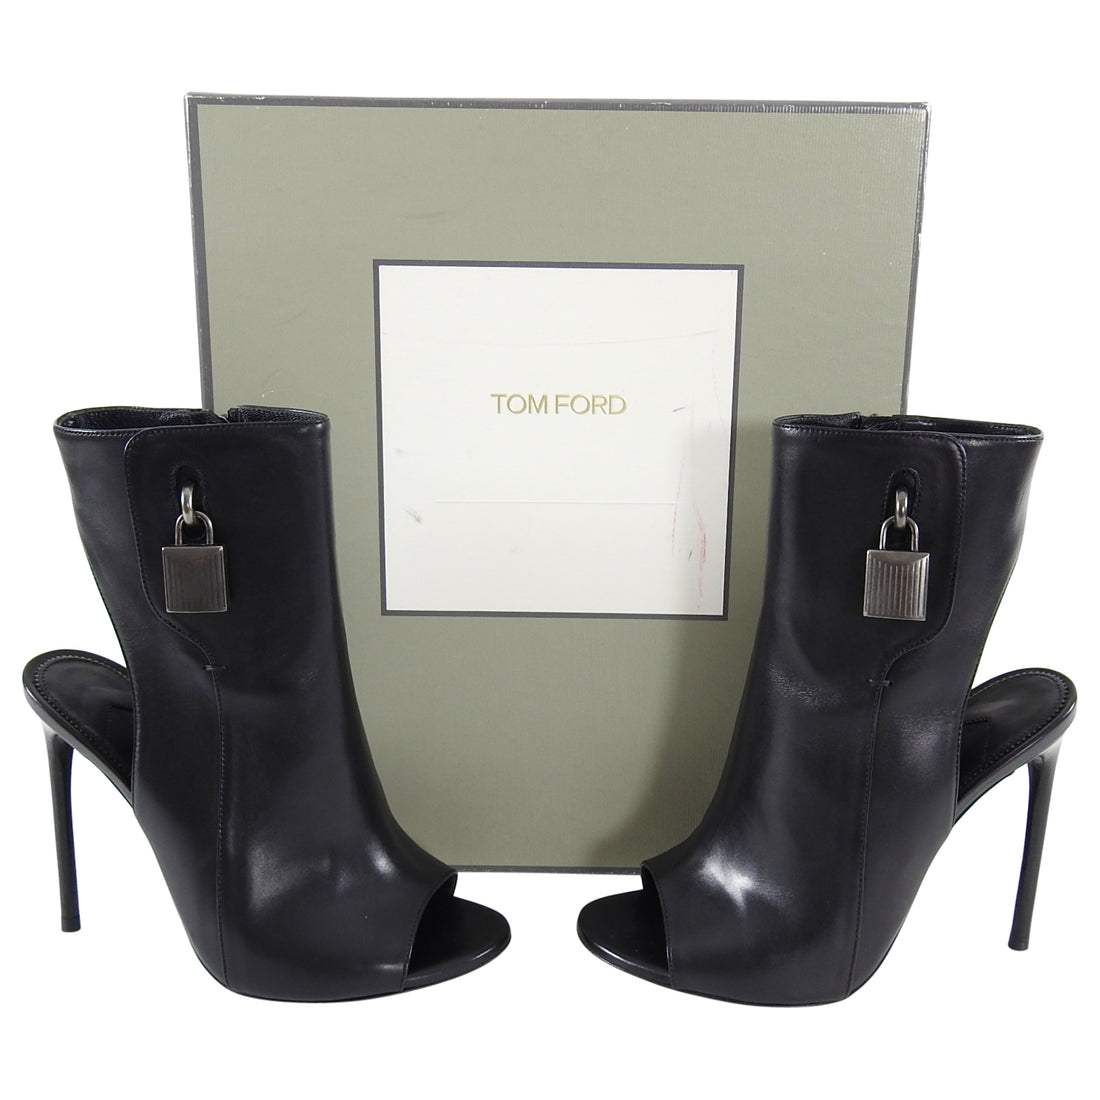 Tom Ford Black Leather Padlock Open Toe and Heel Booties - 36.5